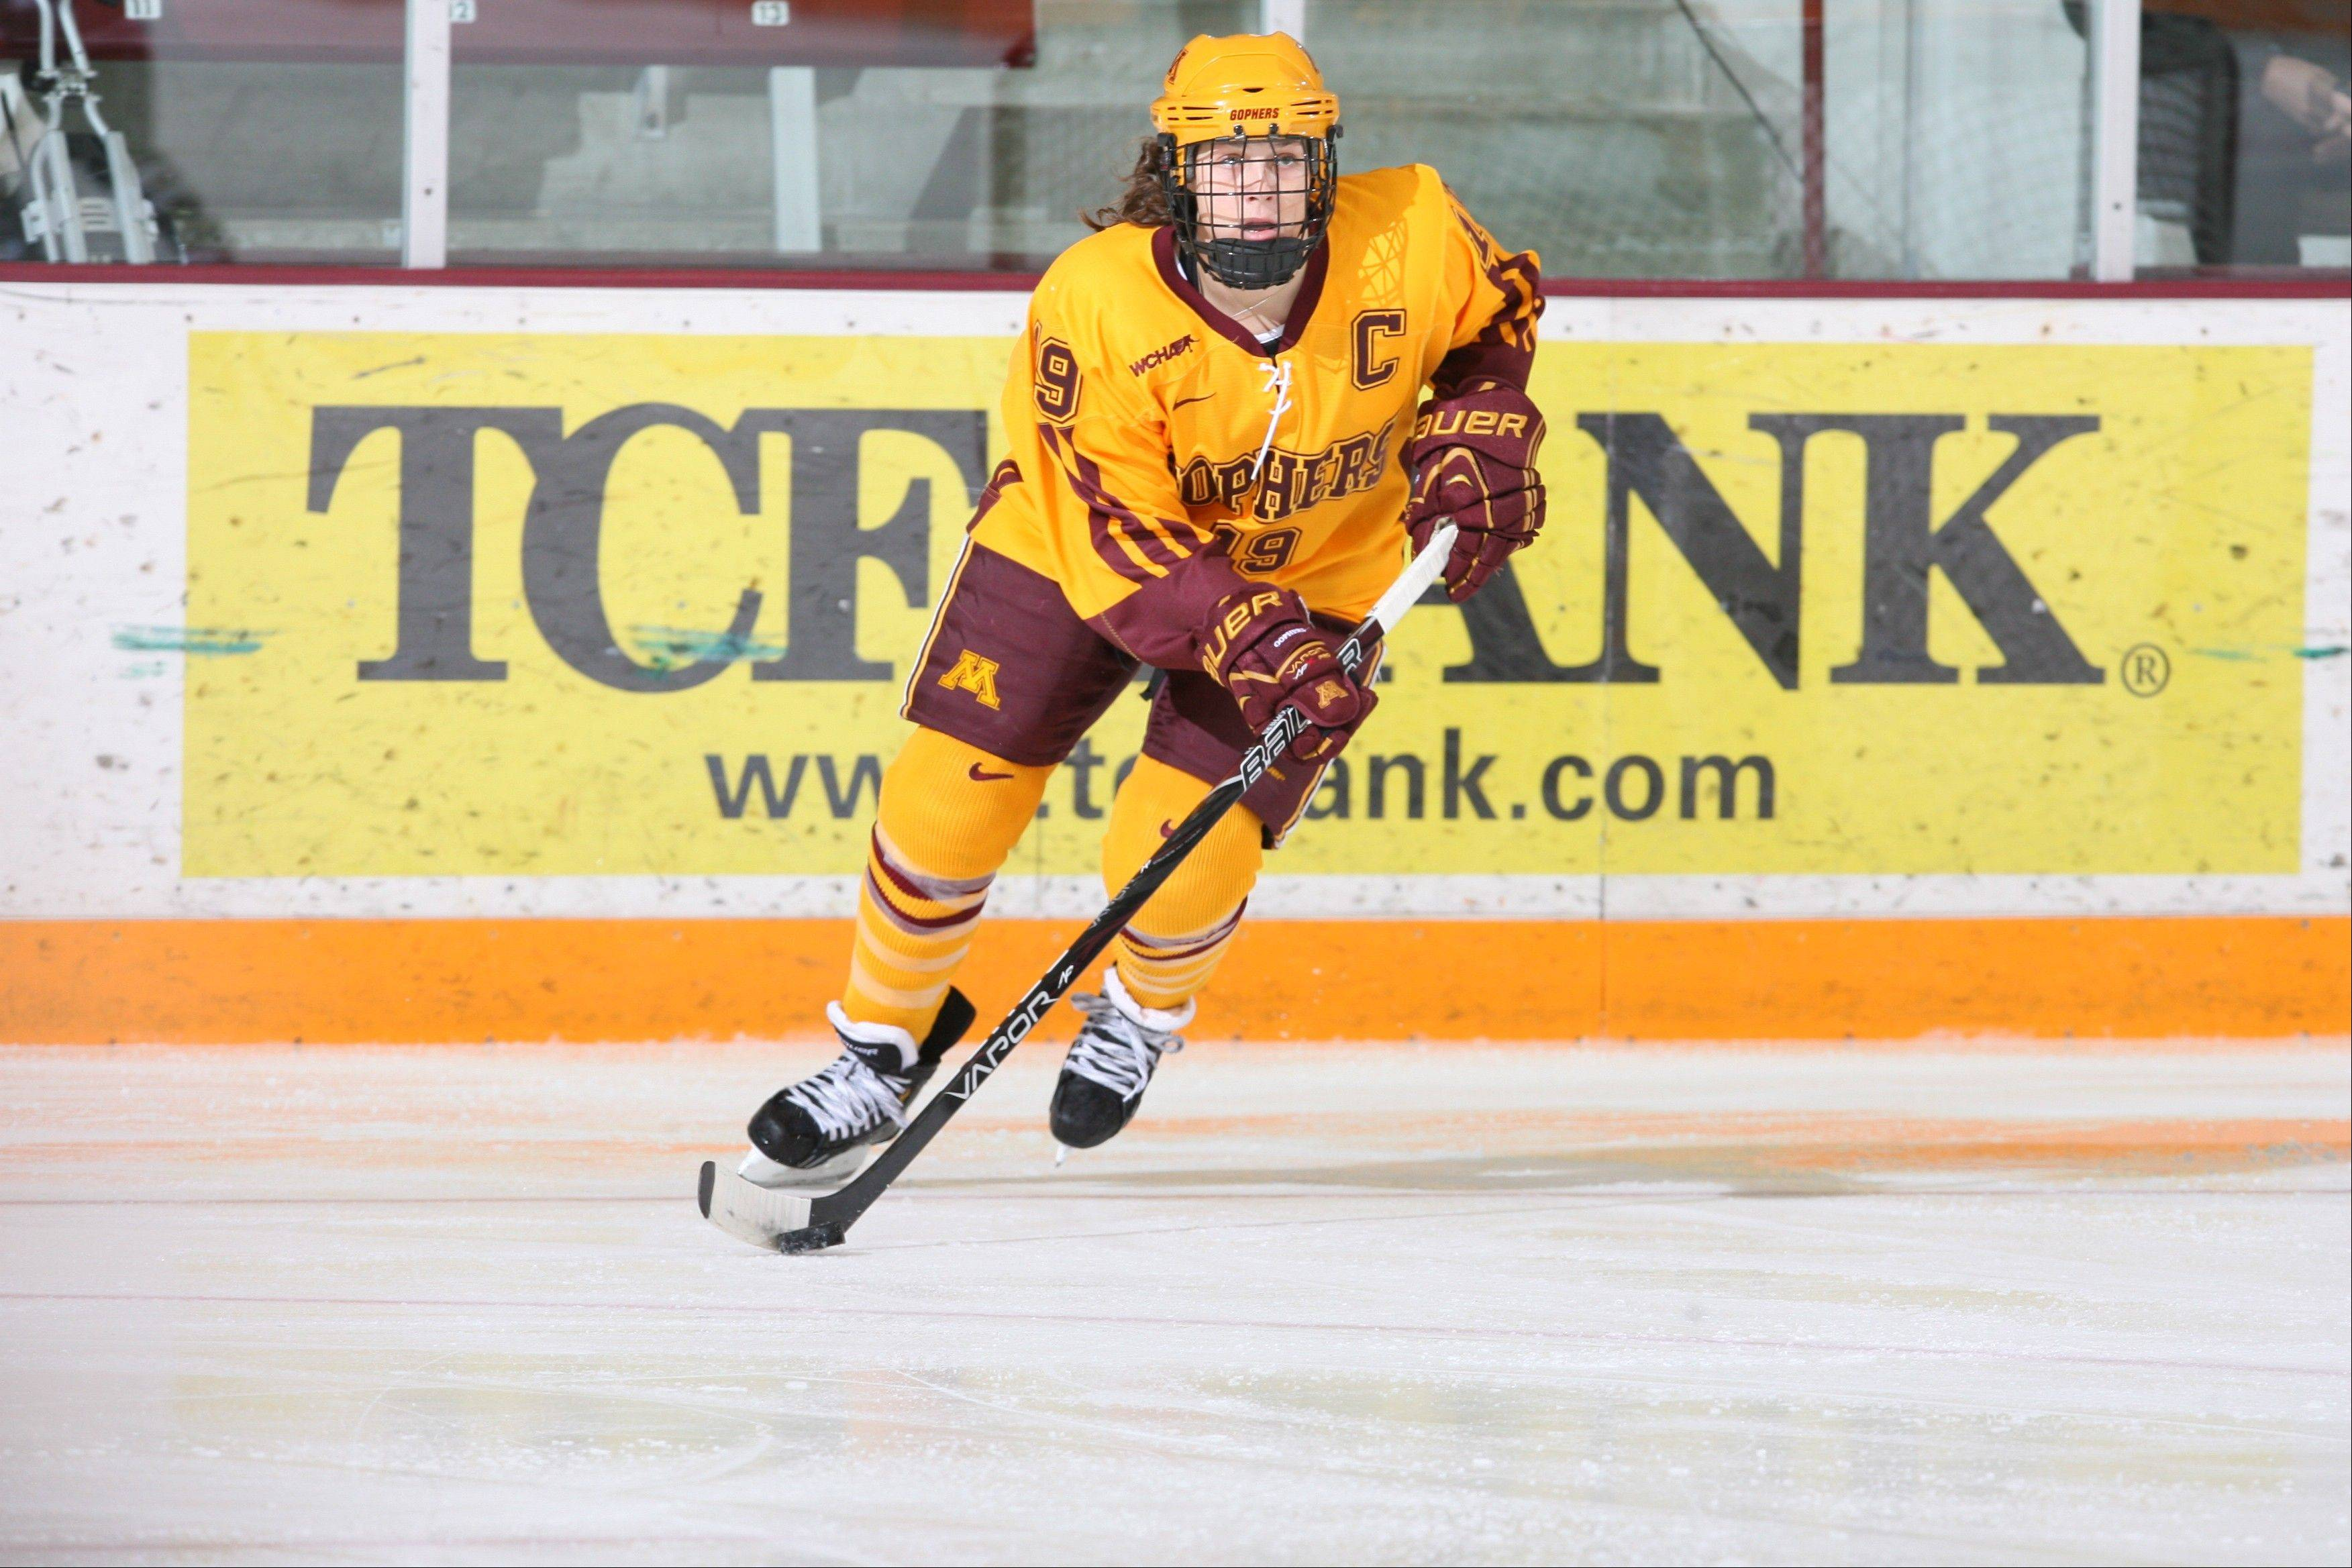 Buffalo Grove native Megan Bozek has been named to the 2014 Olympic team. The Minnesota co-captain completed her college career with back-to-back national championships.